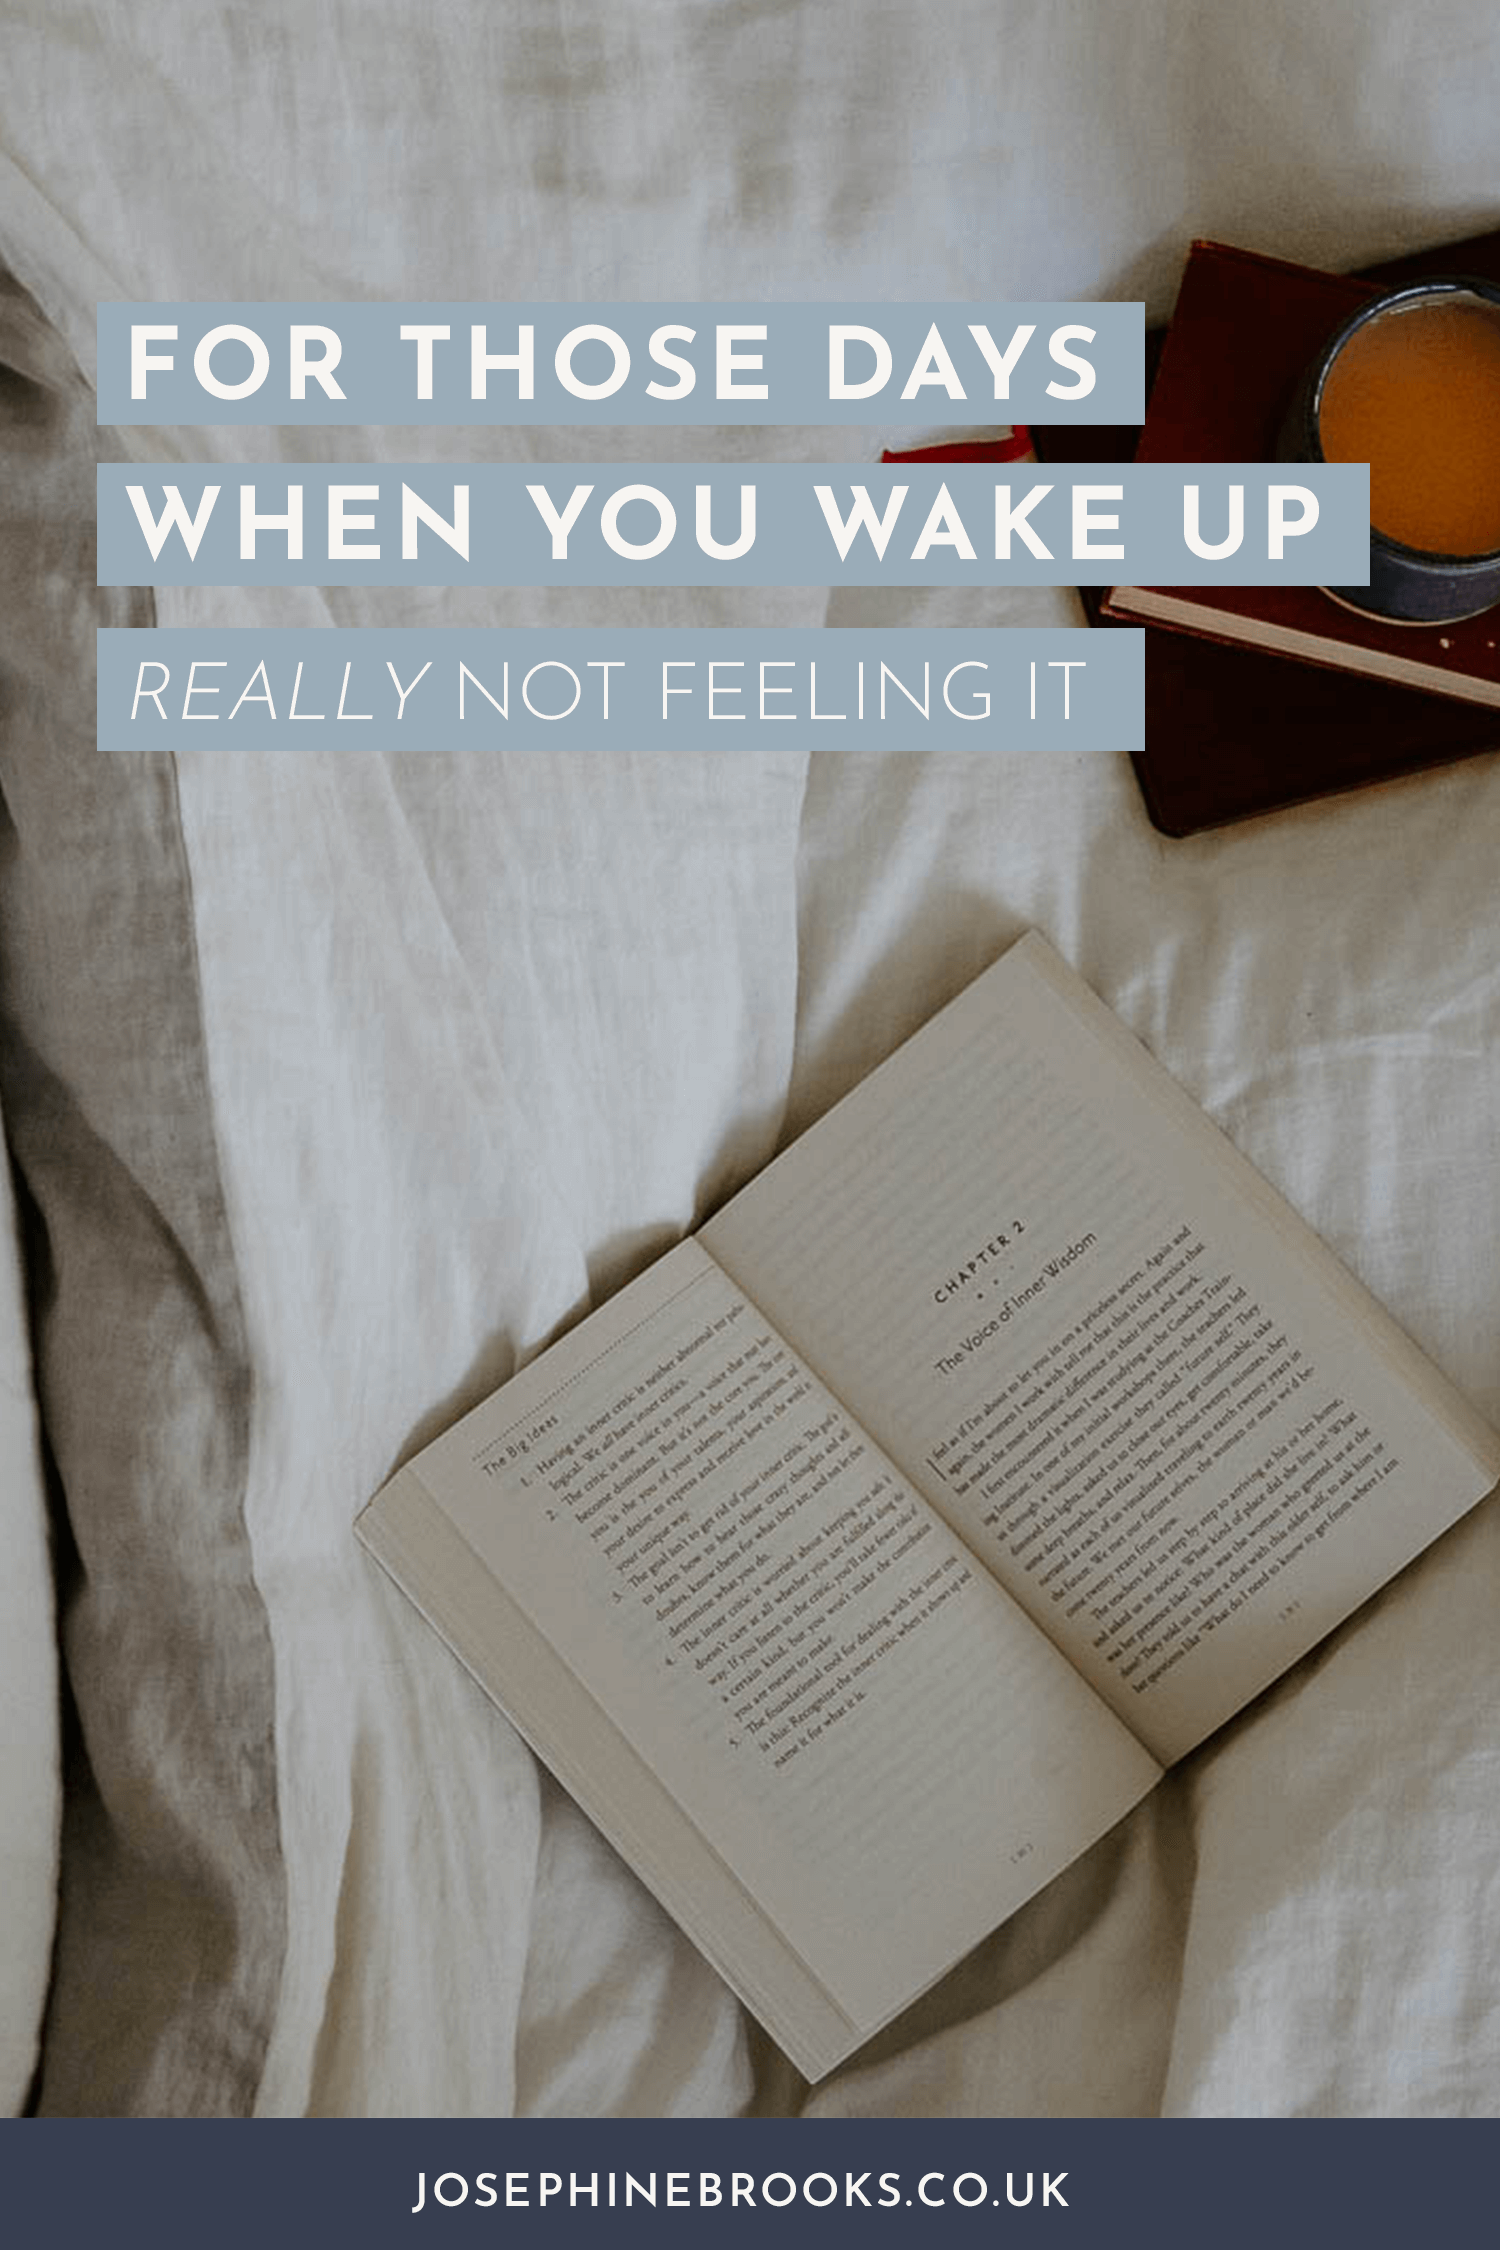 For those days when you wake up really not feeling it - how to change your plan